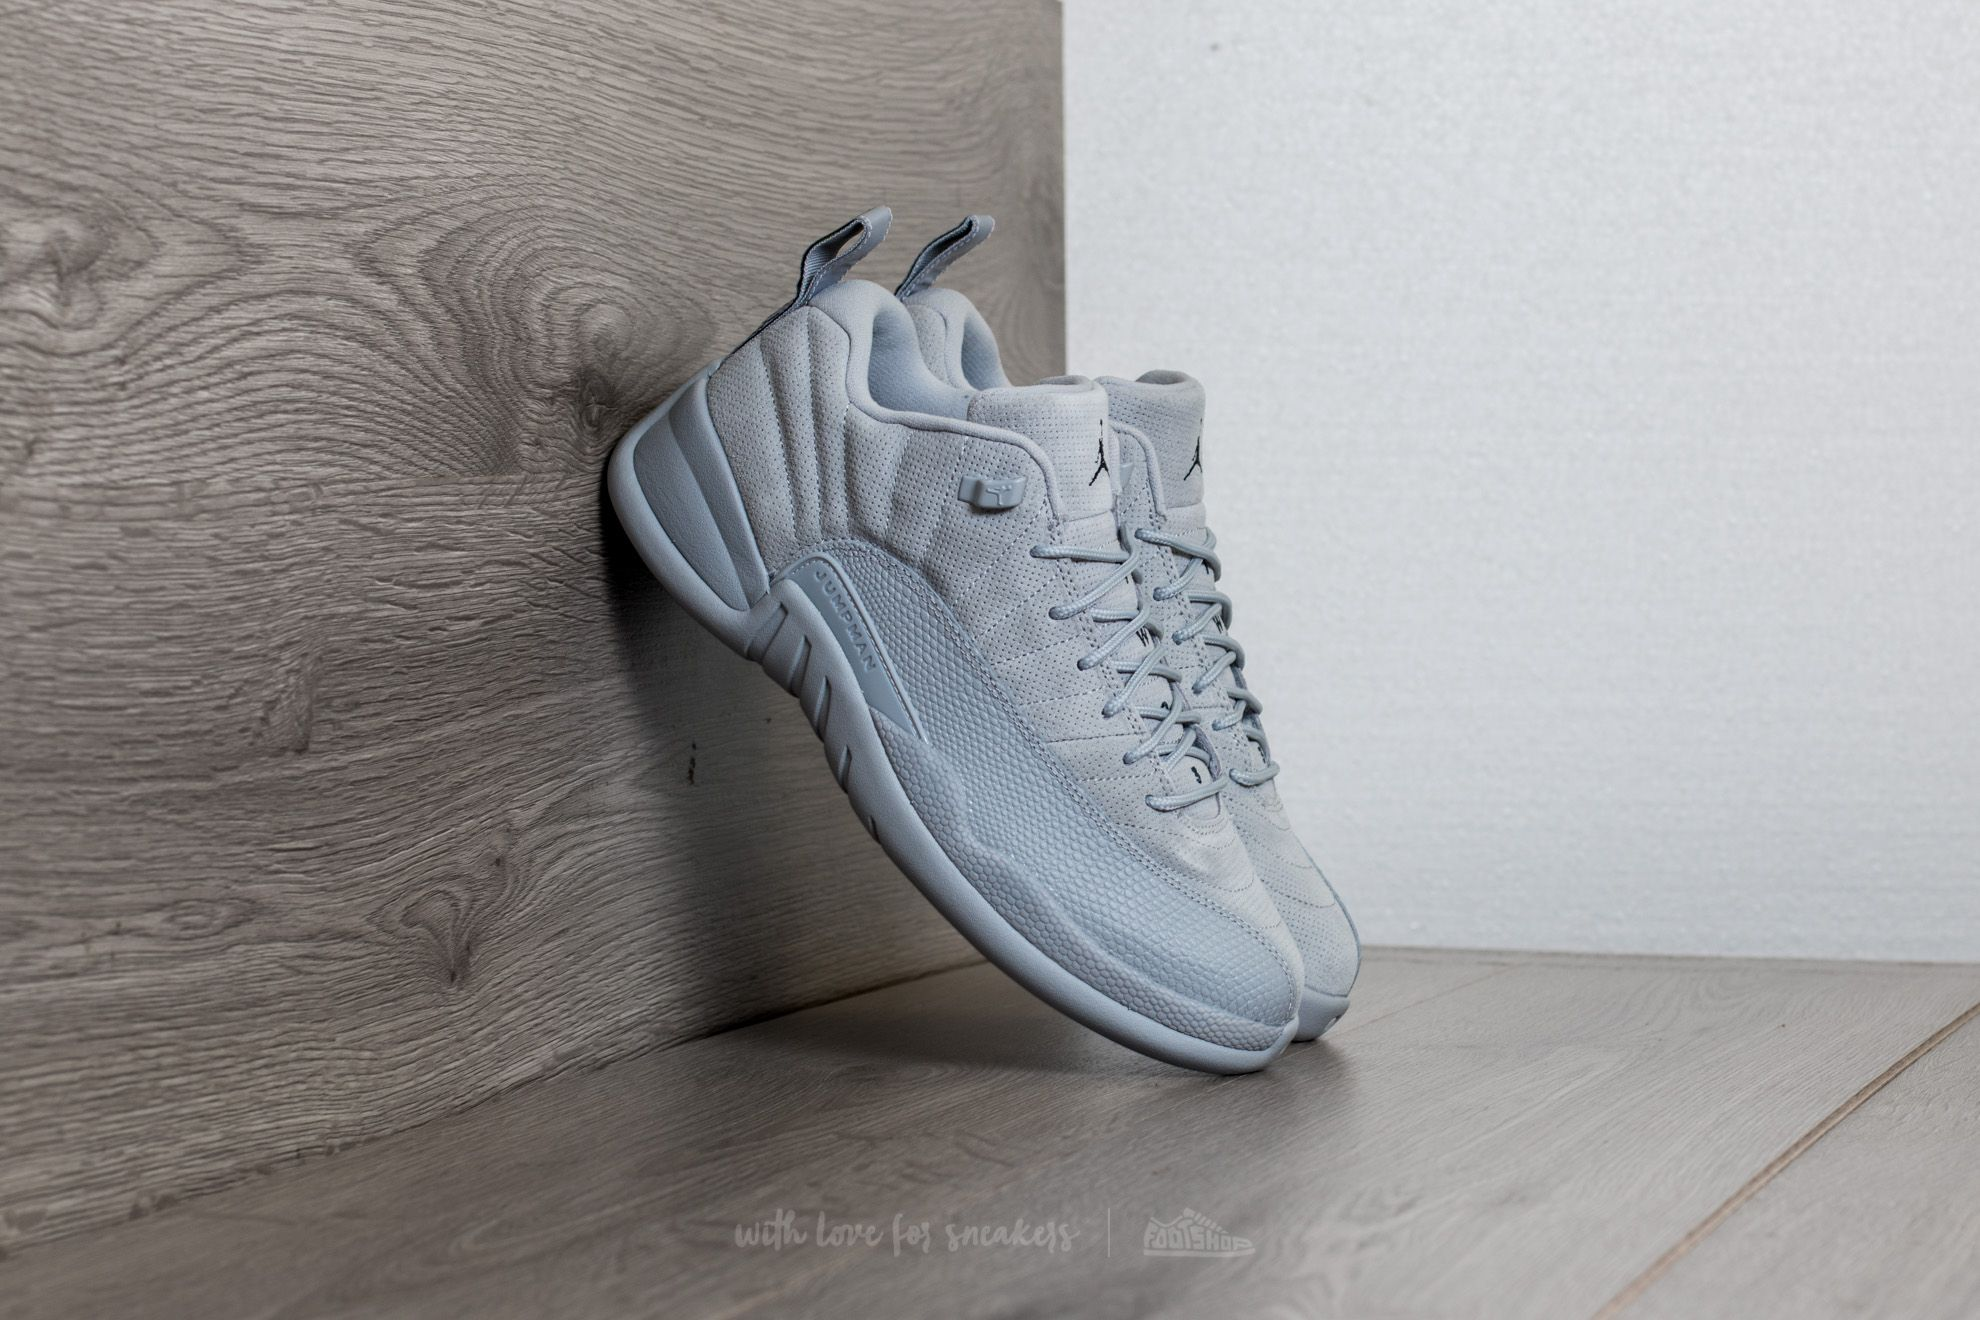 Air Jordan 12 Retro Low Wolf Grey/ Armory Navy